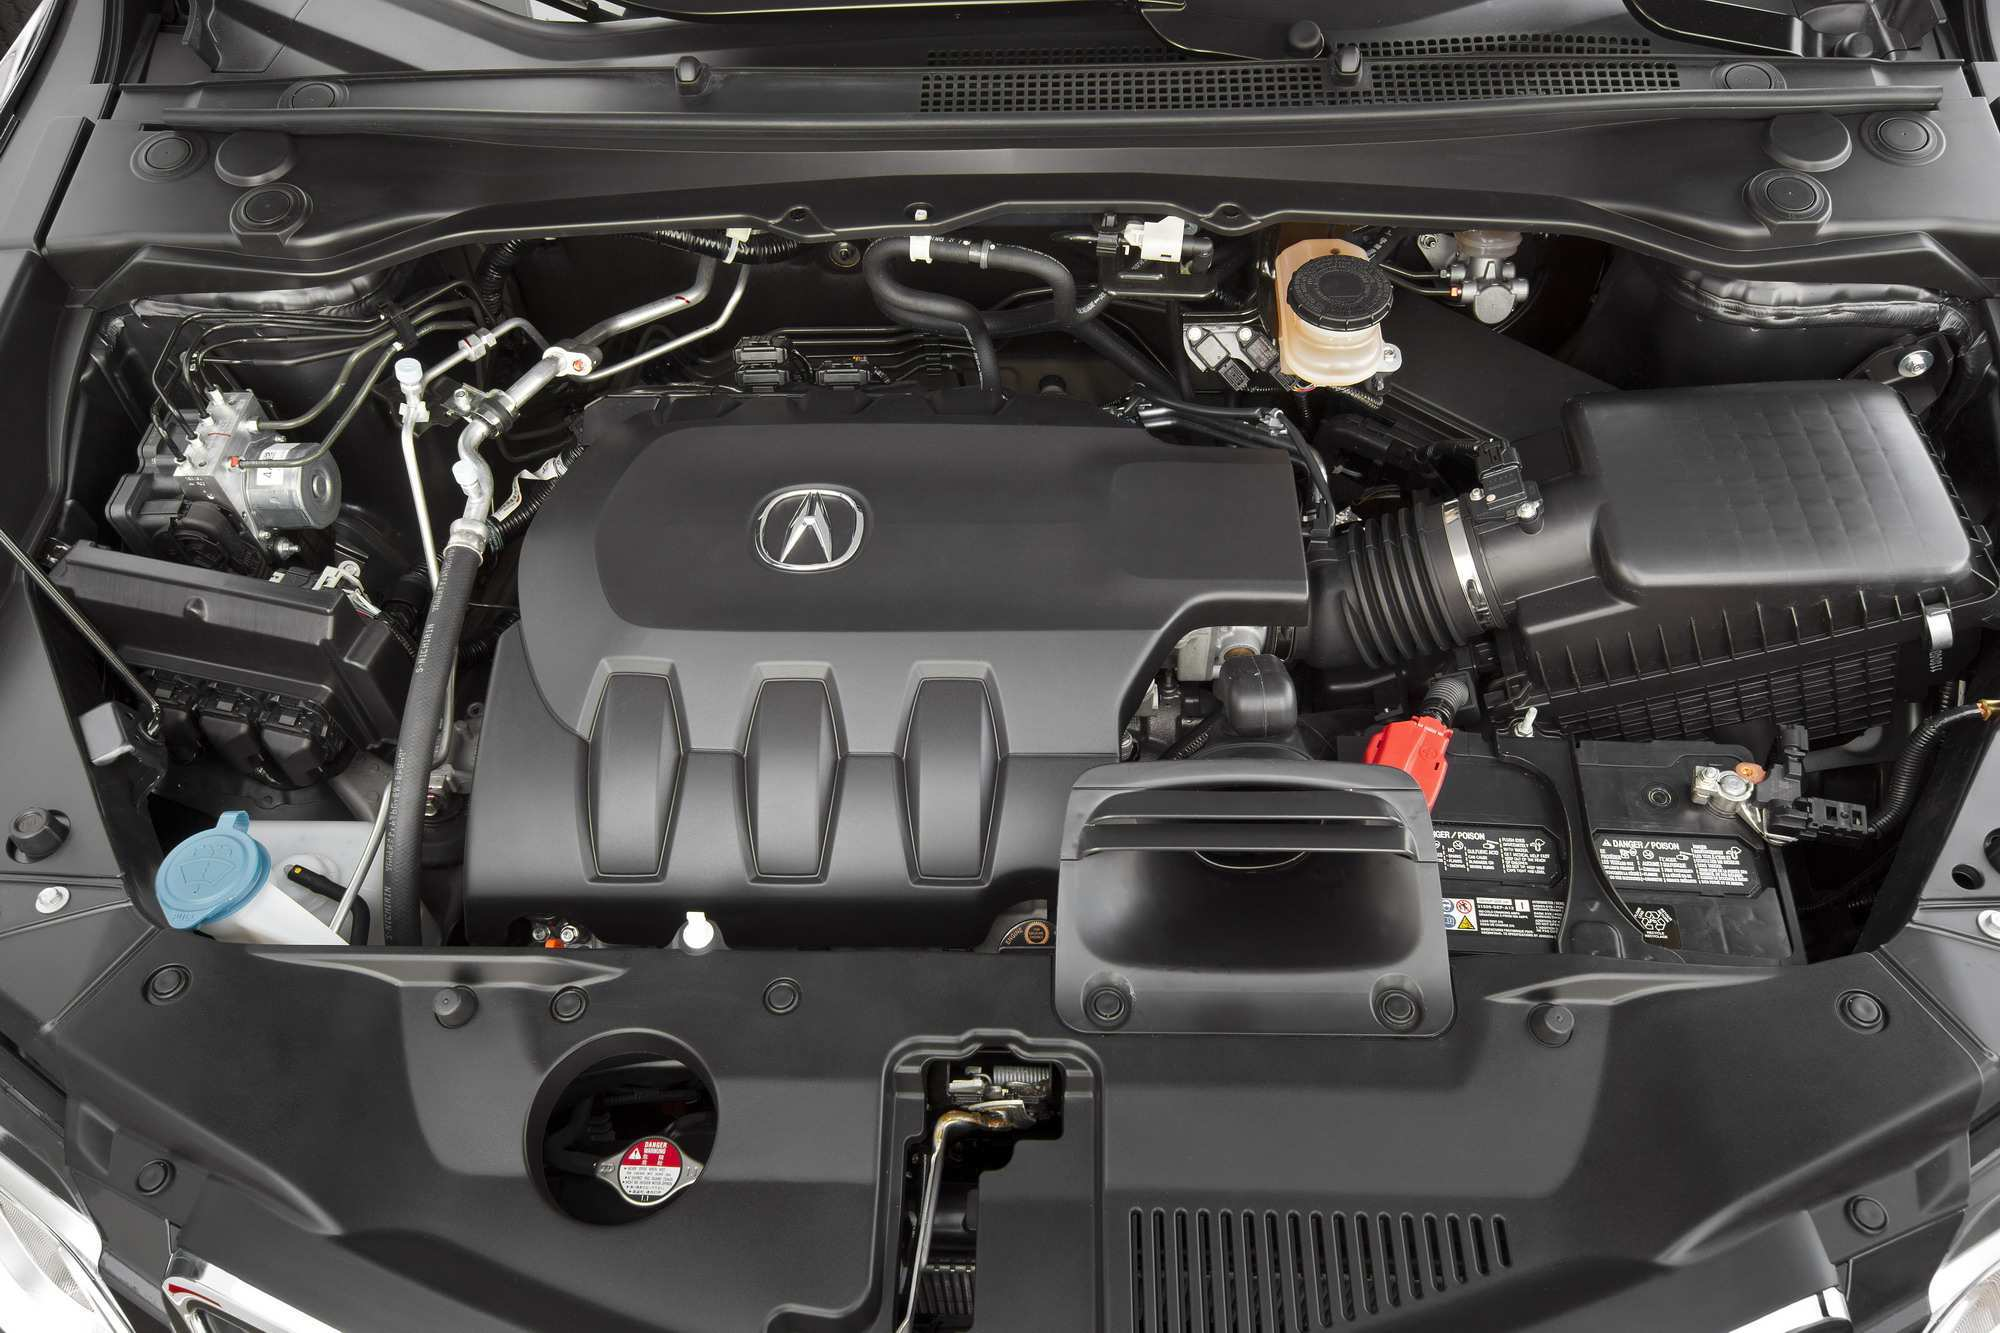 11 New 2019 Acura Rdx Engine Reviews with 2019 Acura Rdx Engine